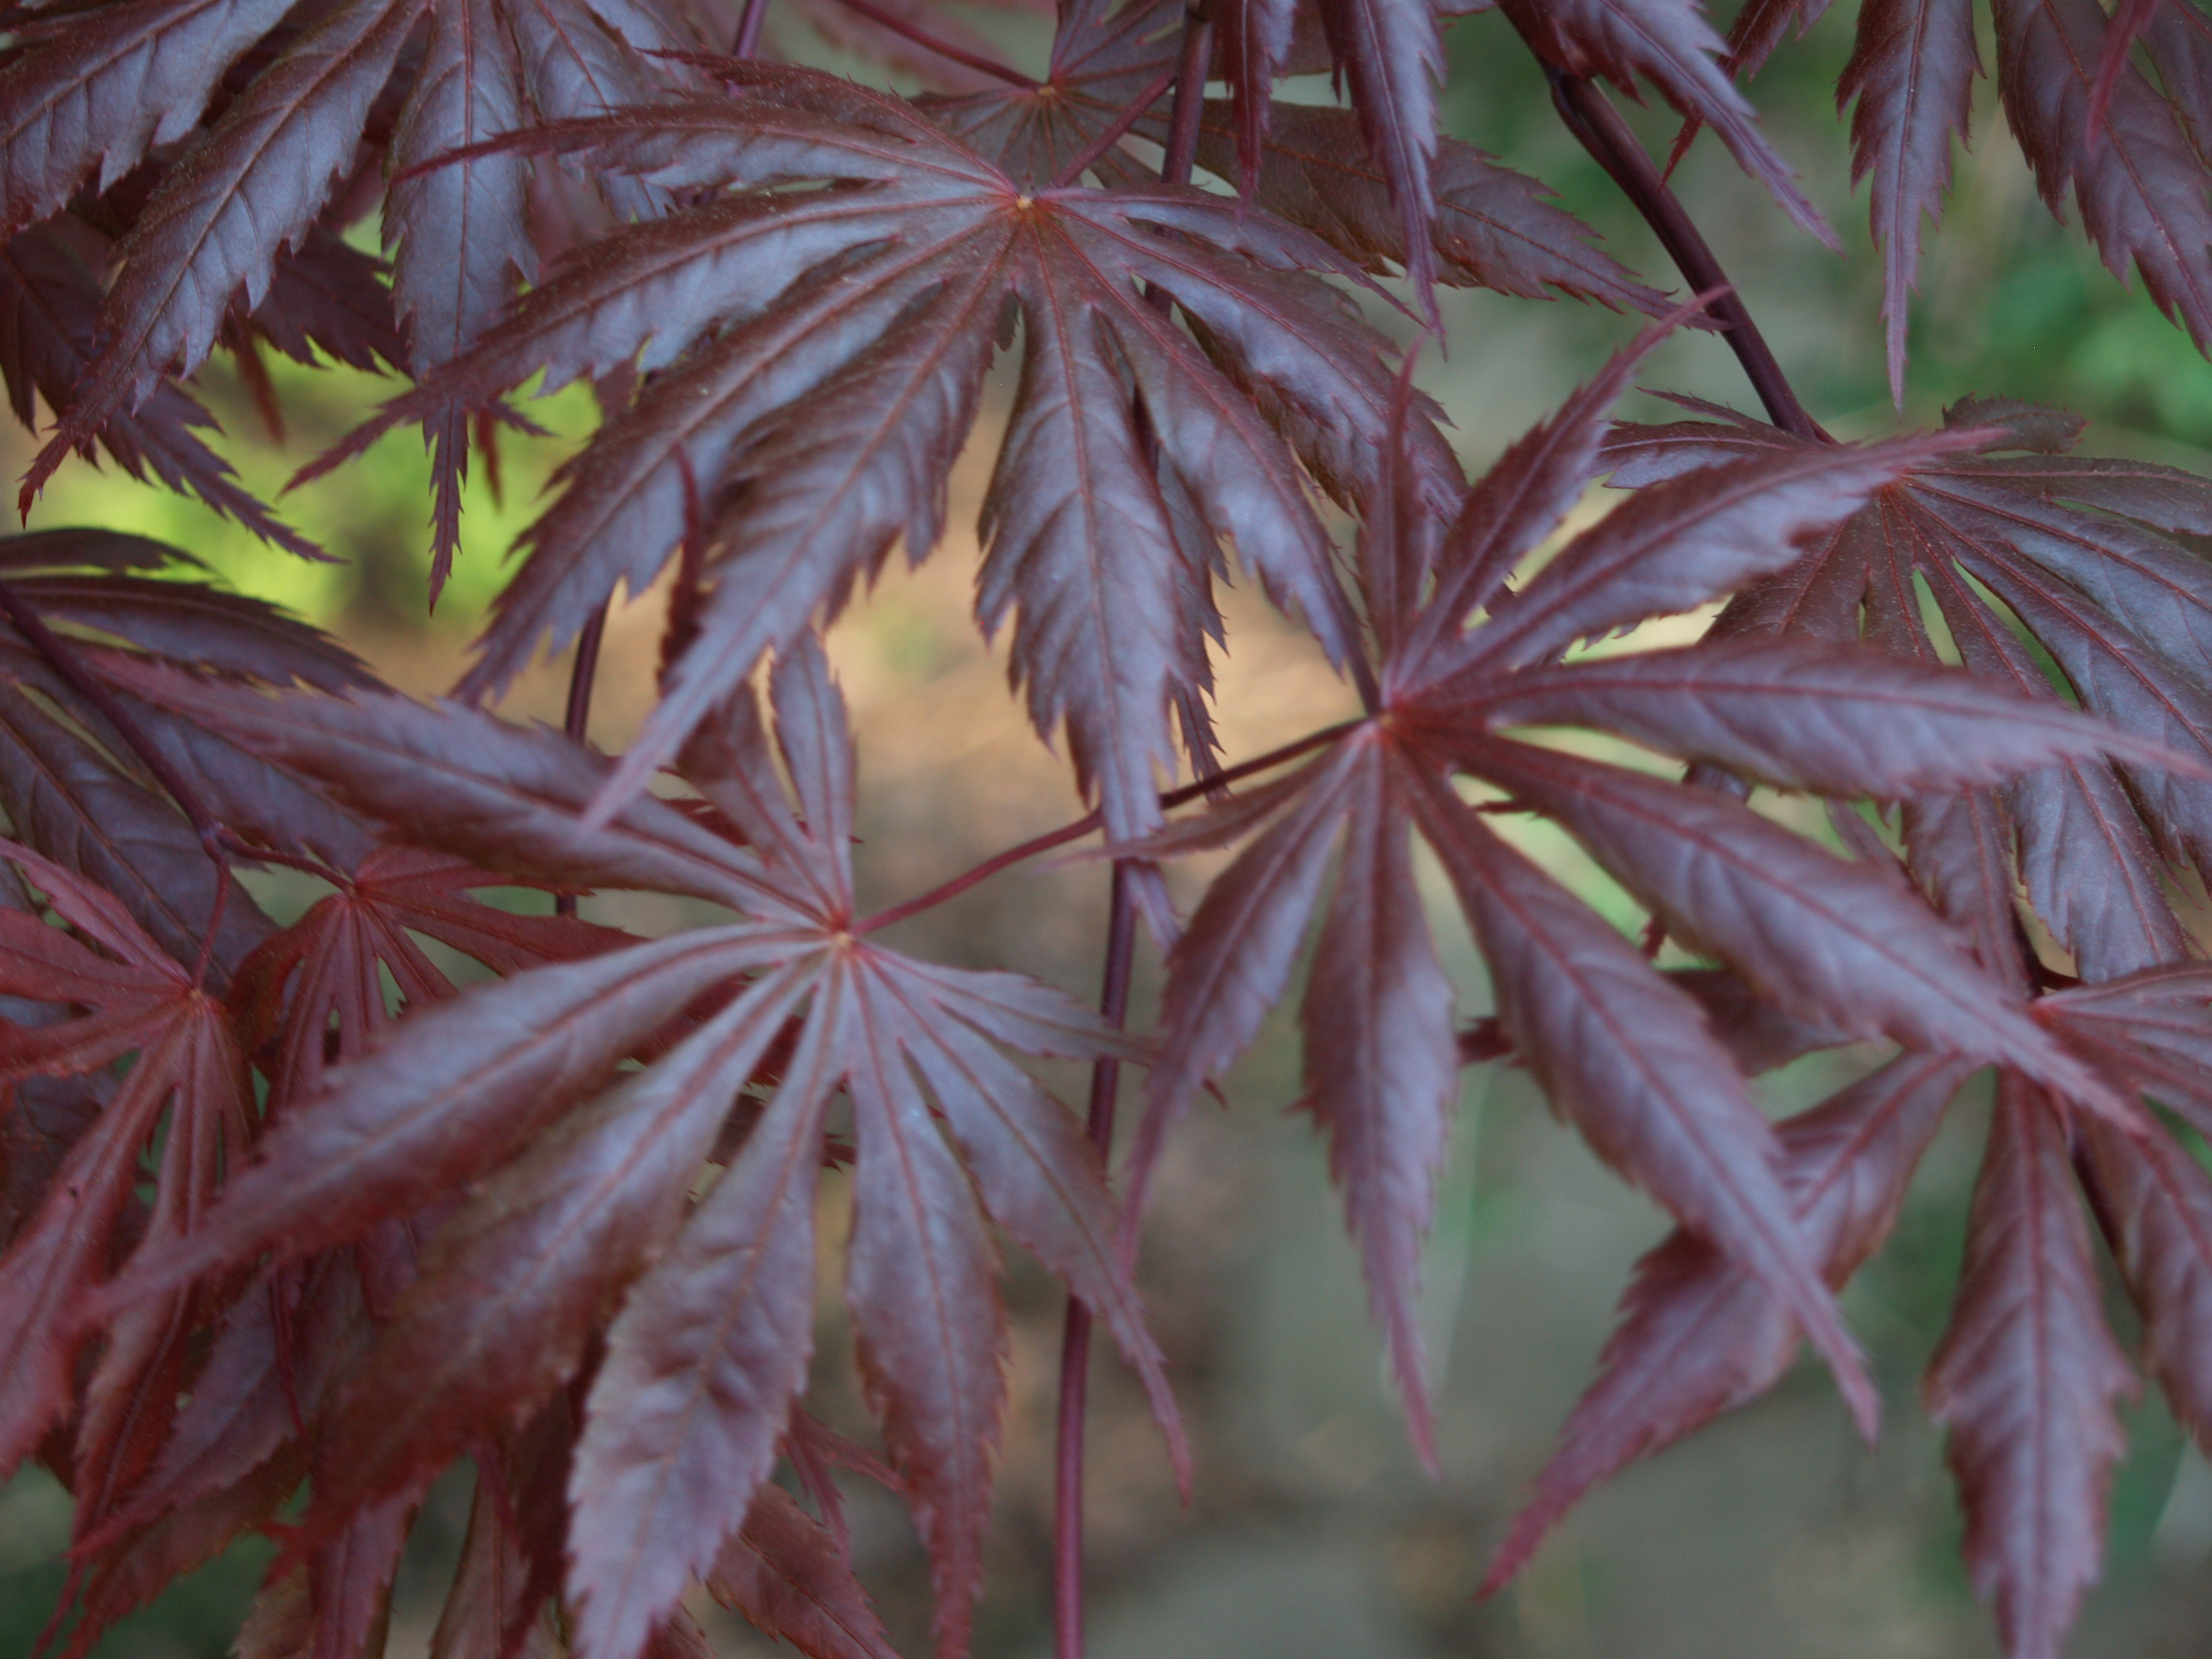 How to care for a fern leaf japanese maple - There